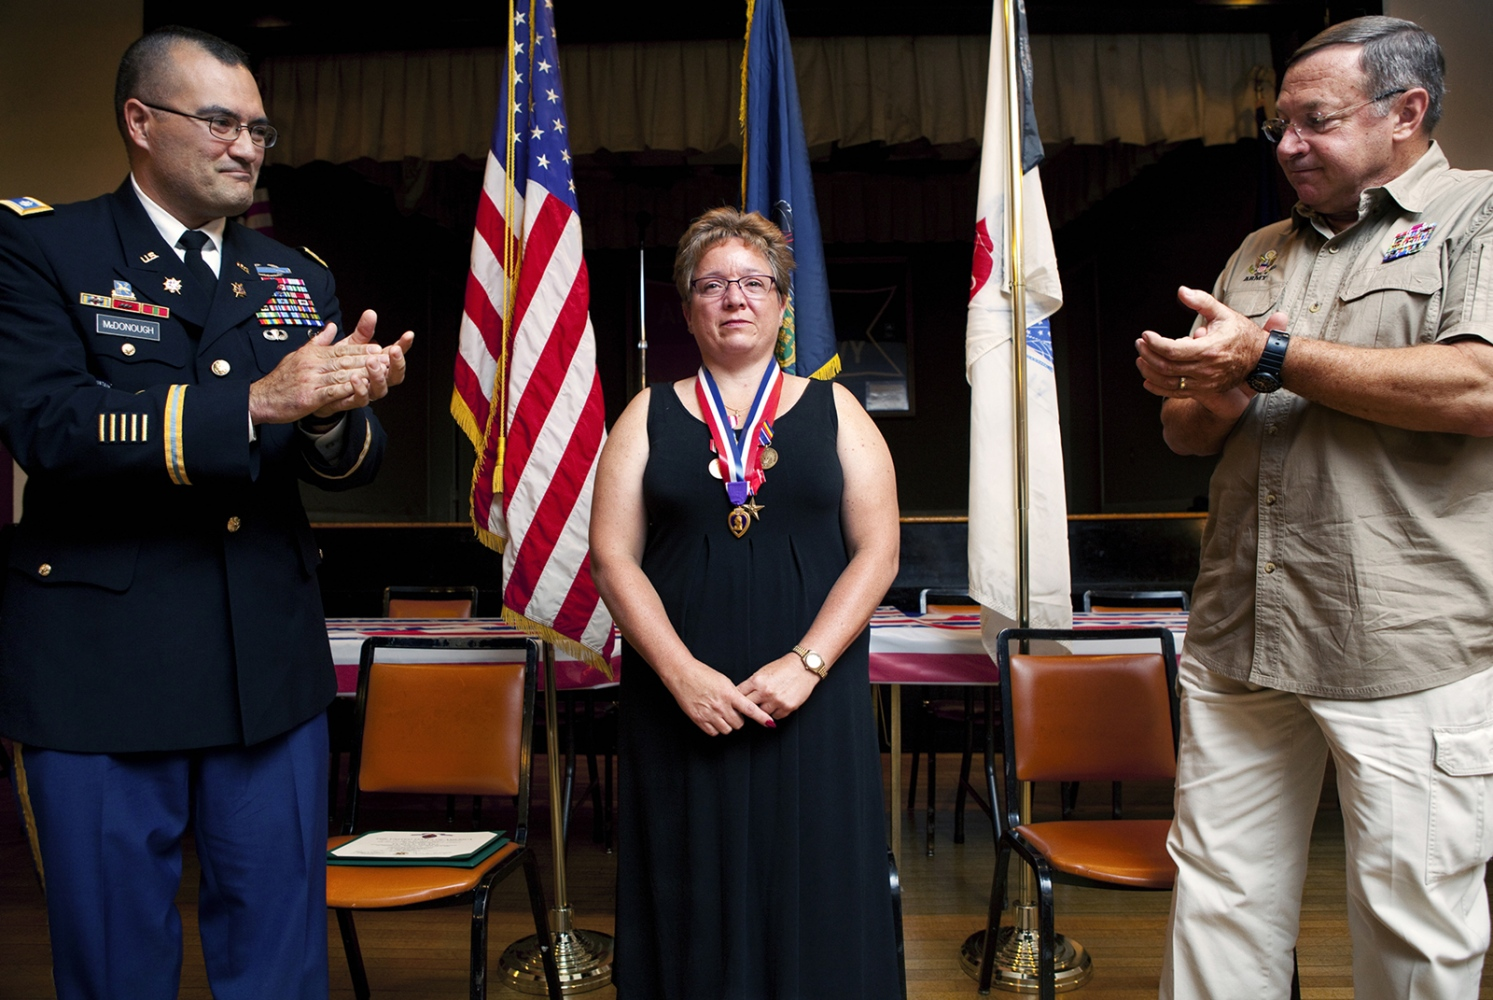 Retired Army Maj. Michelle Dyarman finally recieves a Purple Heart medal for the head trauma injuries she sustained while deployed in Iraq. For years, the Army denied Purple Hearts to soldiers who suffered severe comcussions.